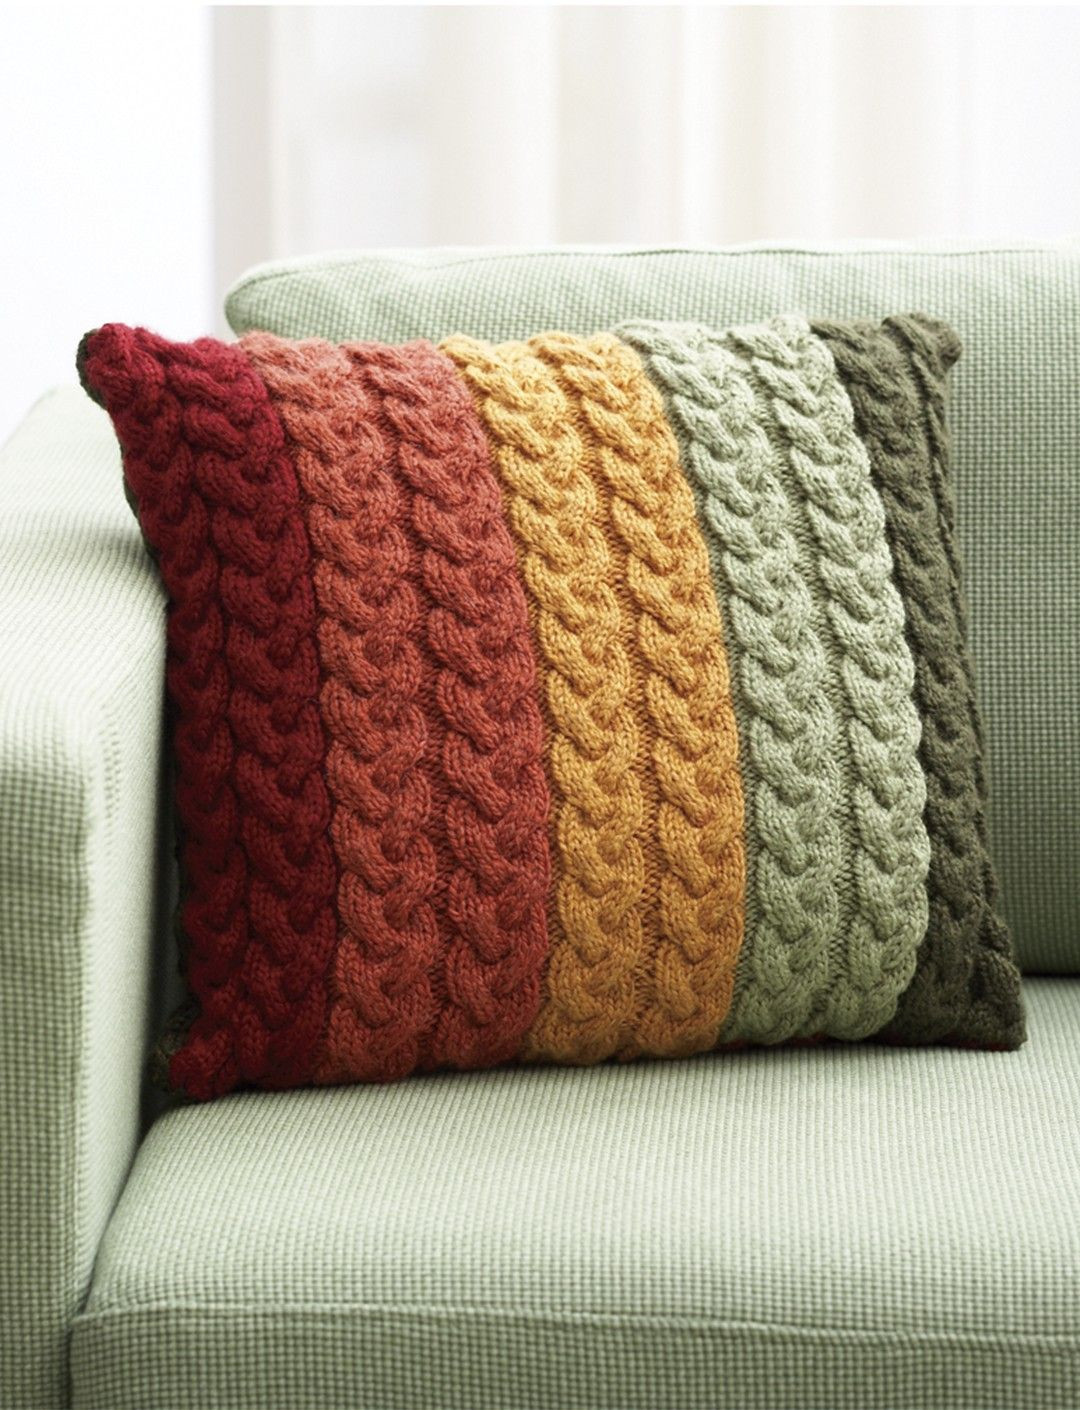 Knit Pillow Luxury Yarnspirations Patons Pillow Patterns Of Charming 46 Pics Knit Pillow